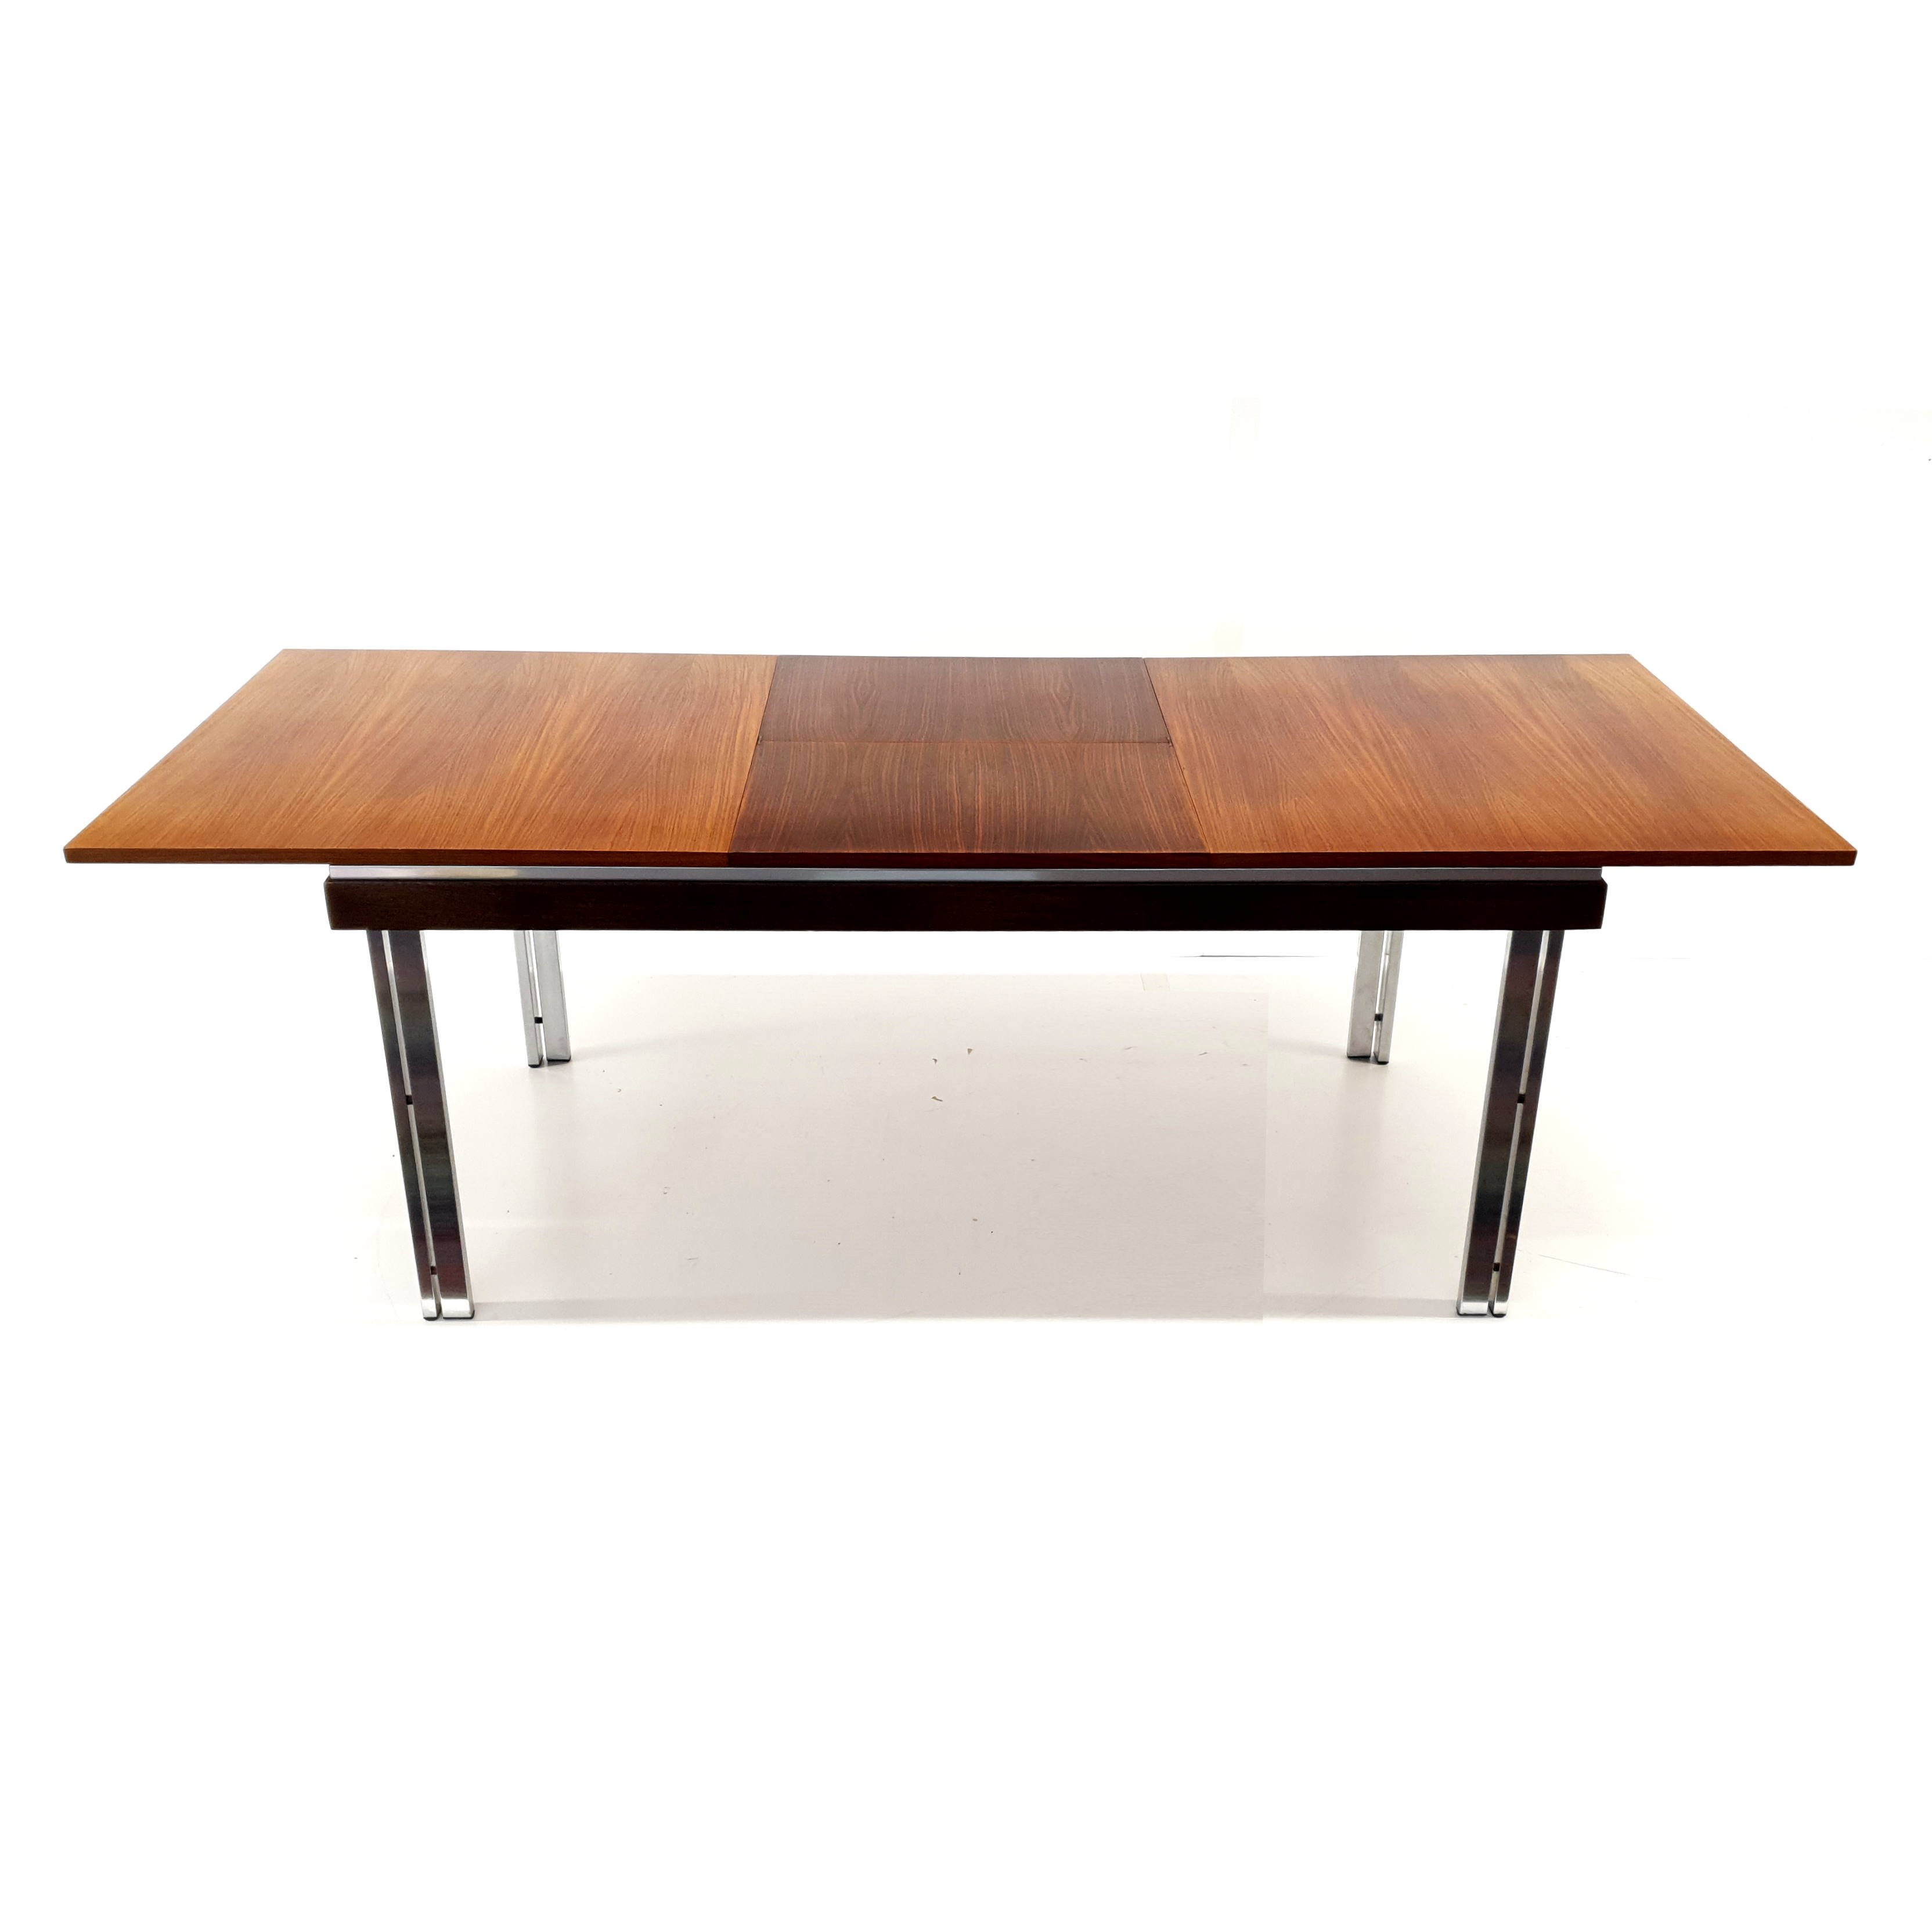 Vintage Extendable Dining Table By Belgian Architect Roger De Winter 1960s 124661